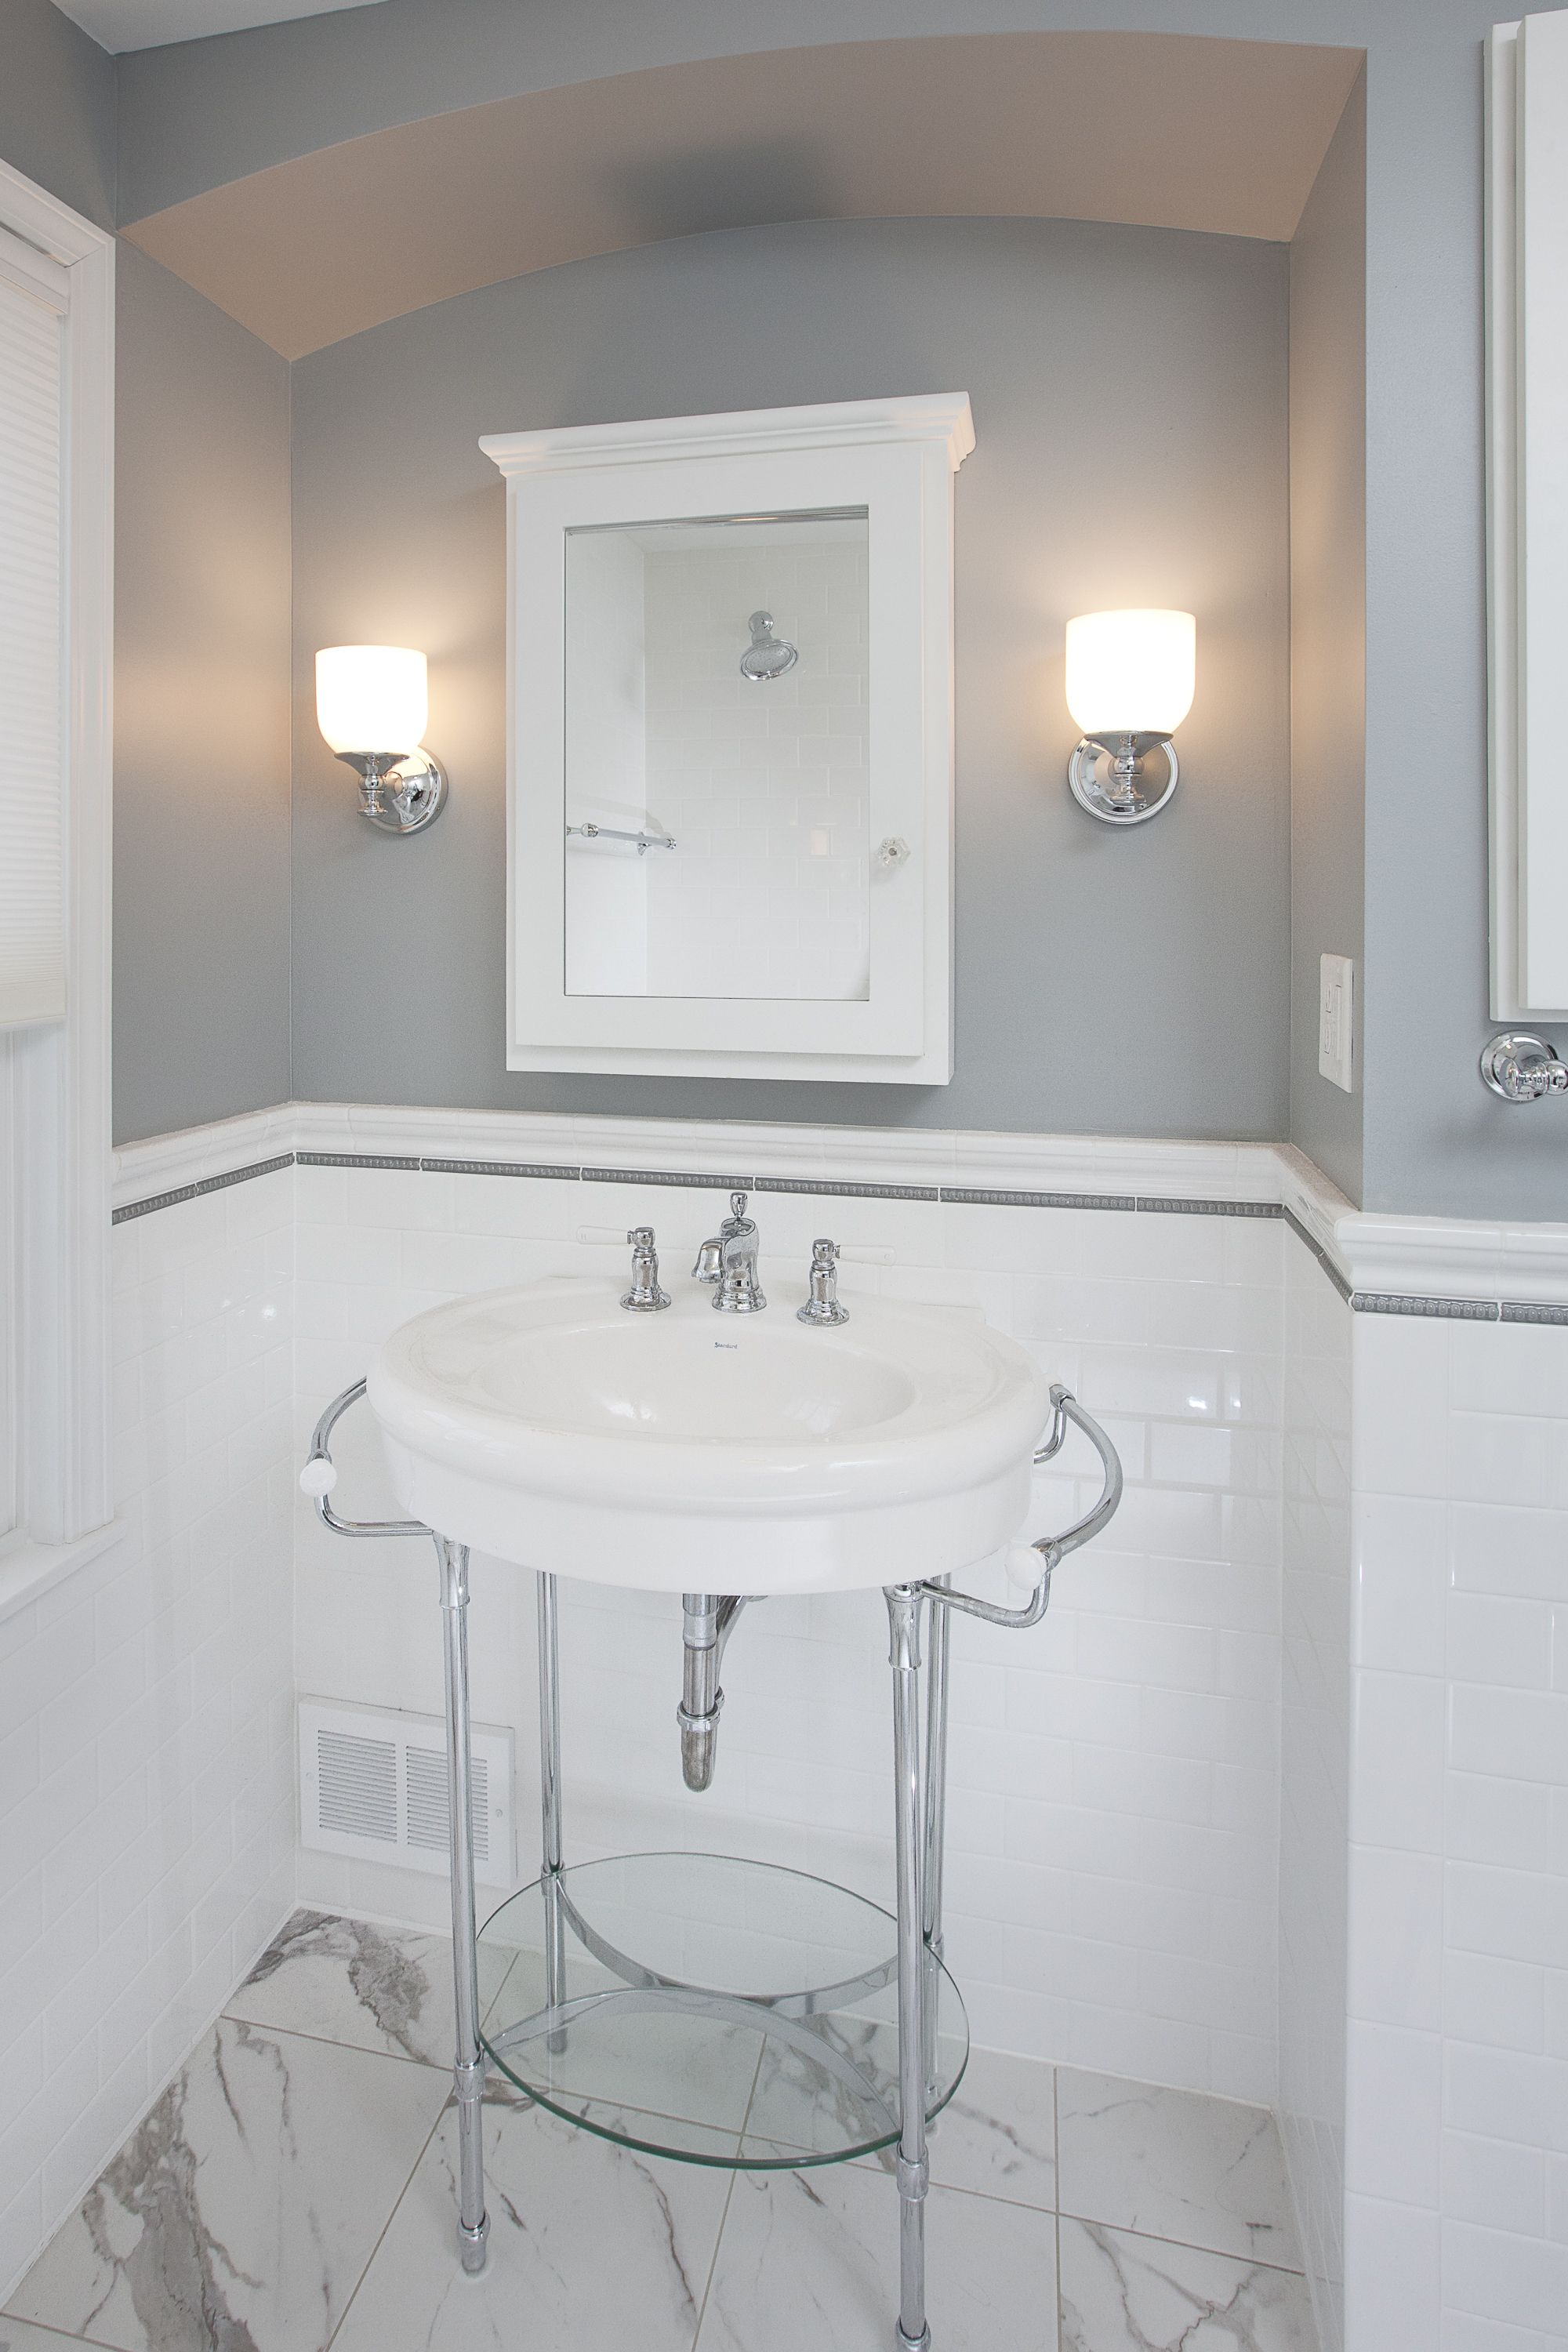 Designed by elizabeth bland 1940s cape cod highland park bath traditional bathroom white subway tile design pictures remodel decor and ideas page 7 dailygadgetfo Gallery